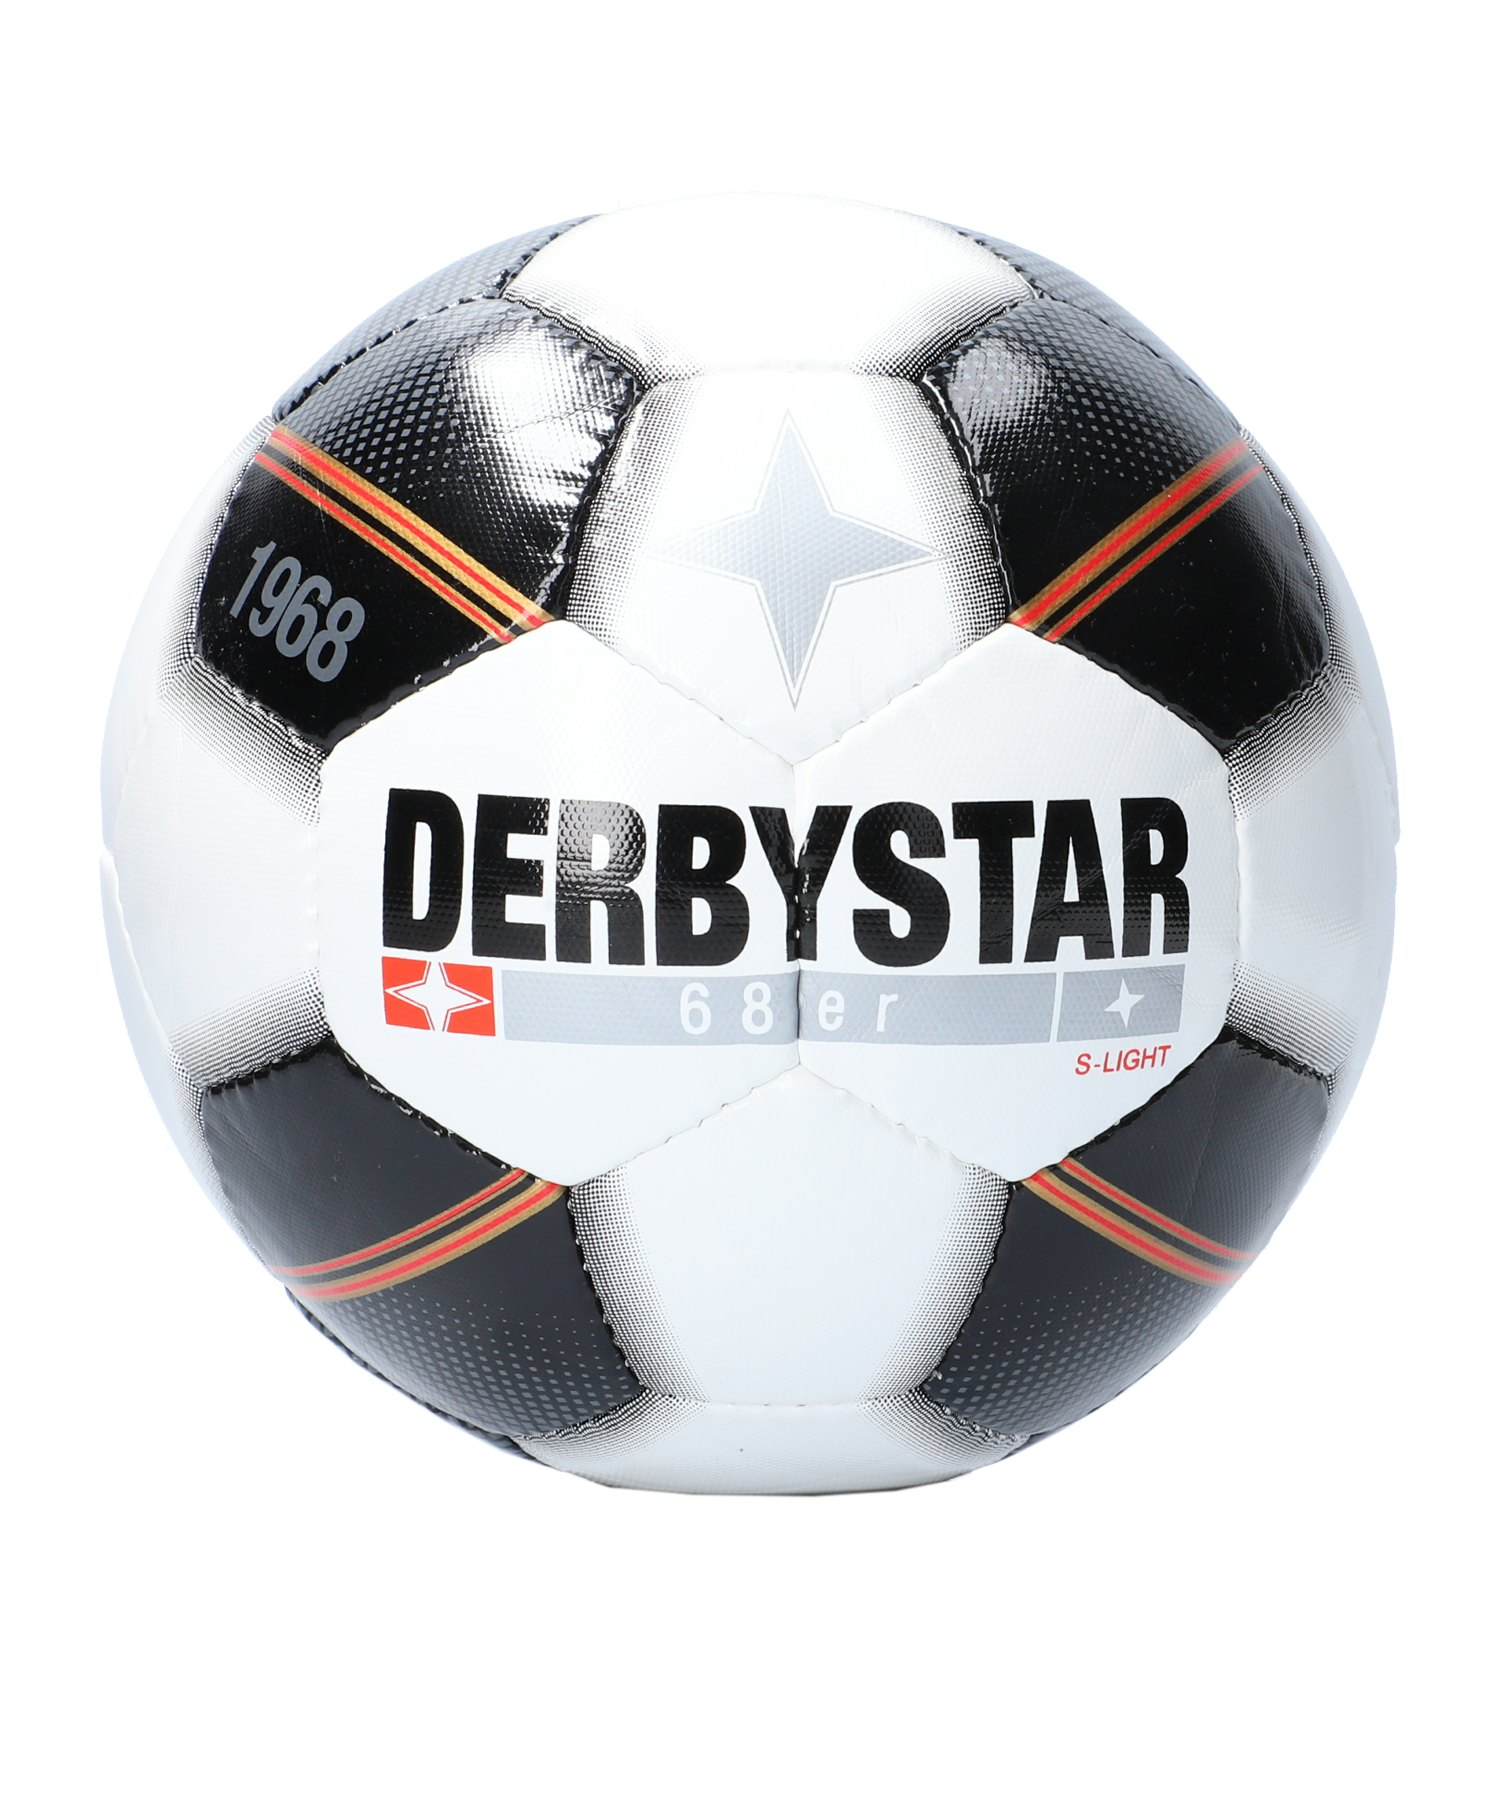 Derbystar 68er S-Light Fussball F123 - weiss